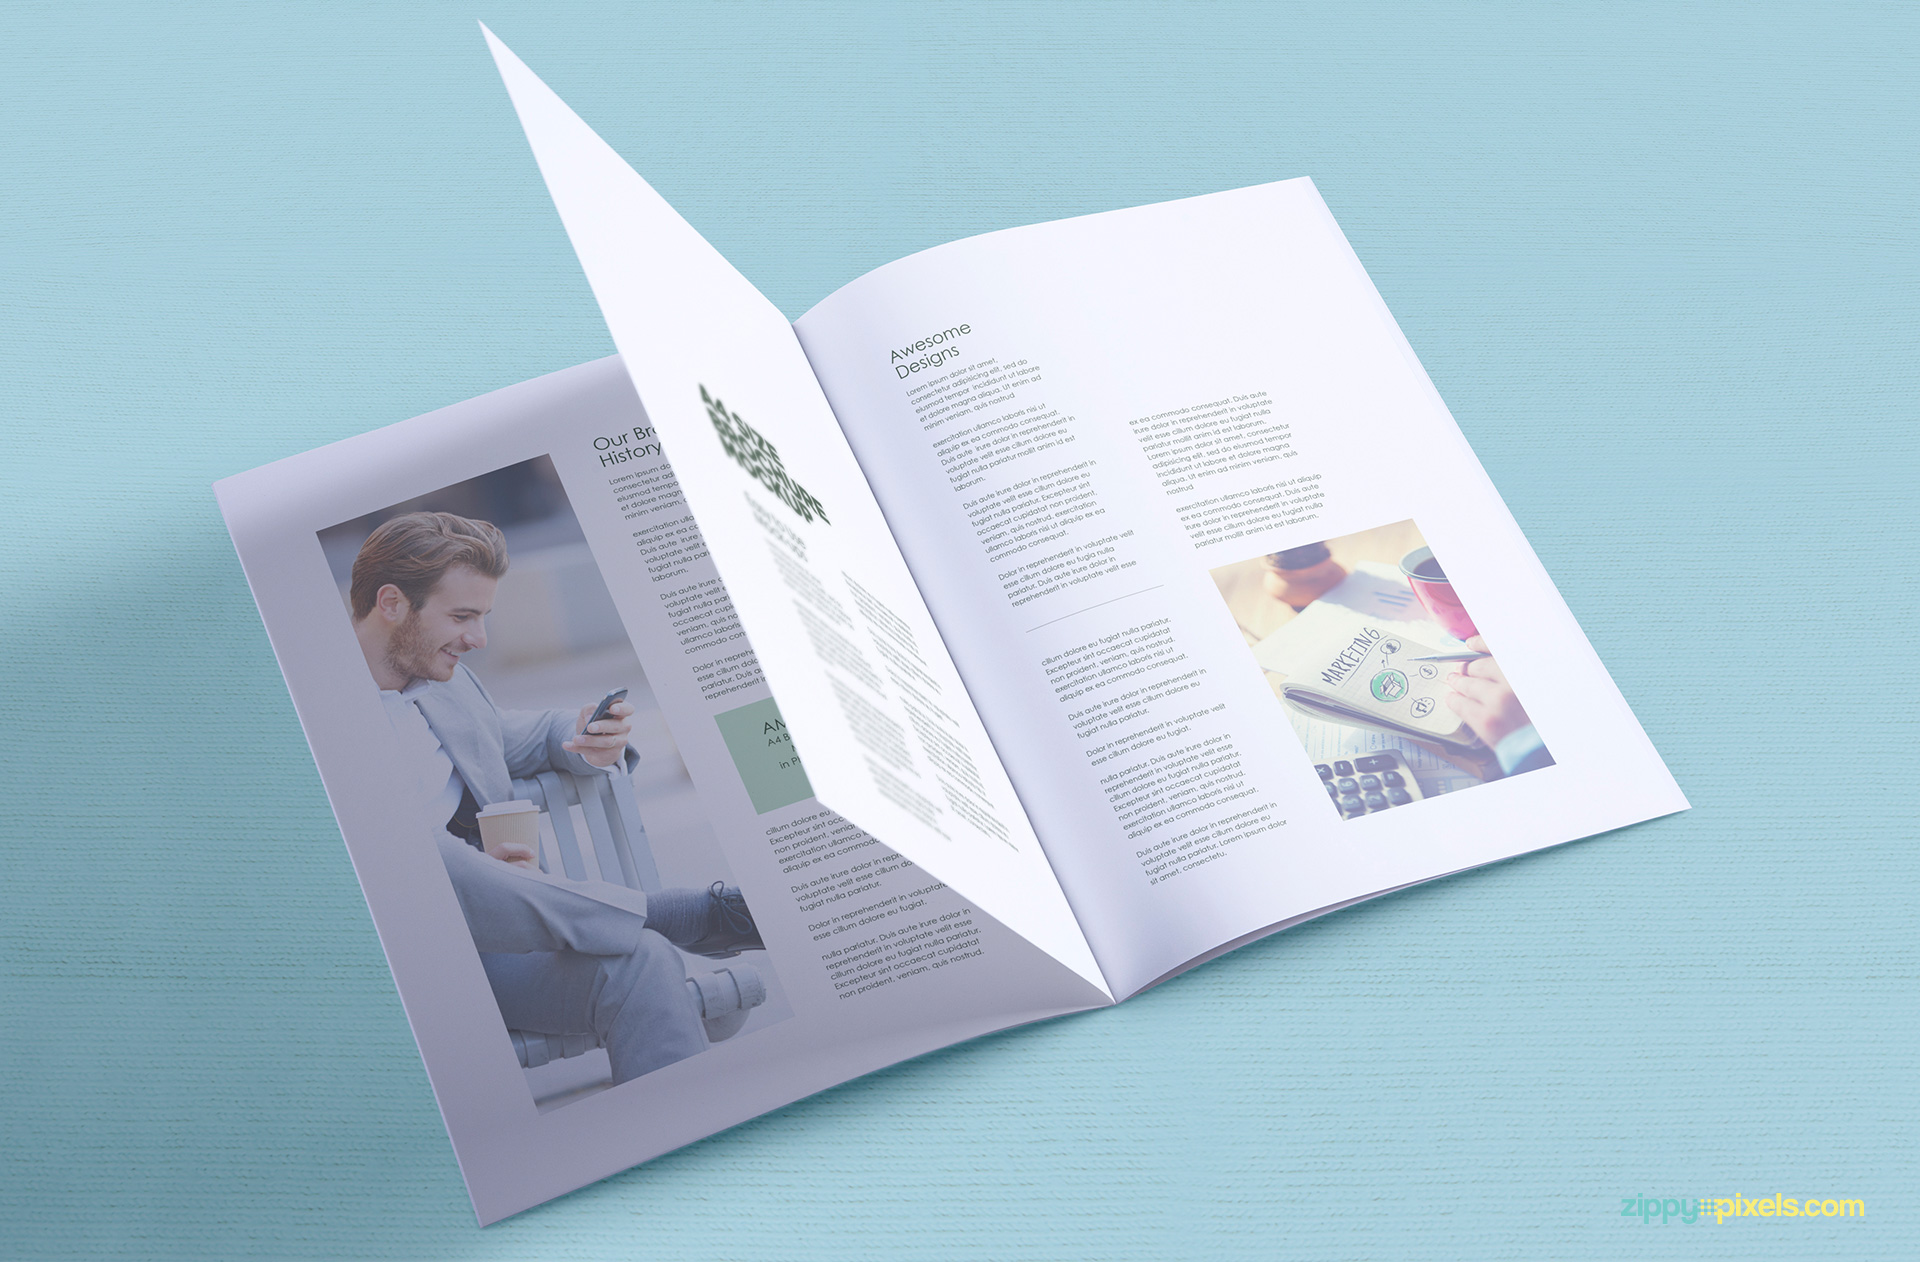 05-free-horizontal-a4-brochure-mock-up-824x542